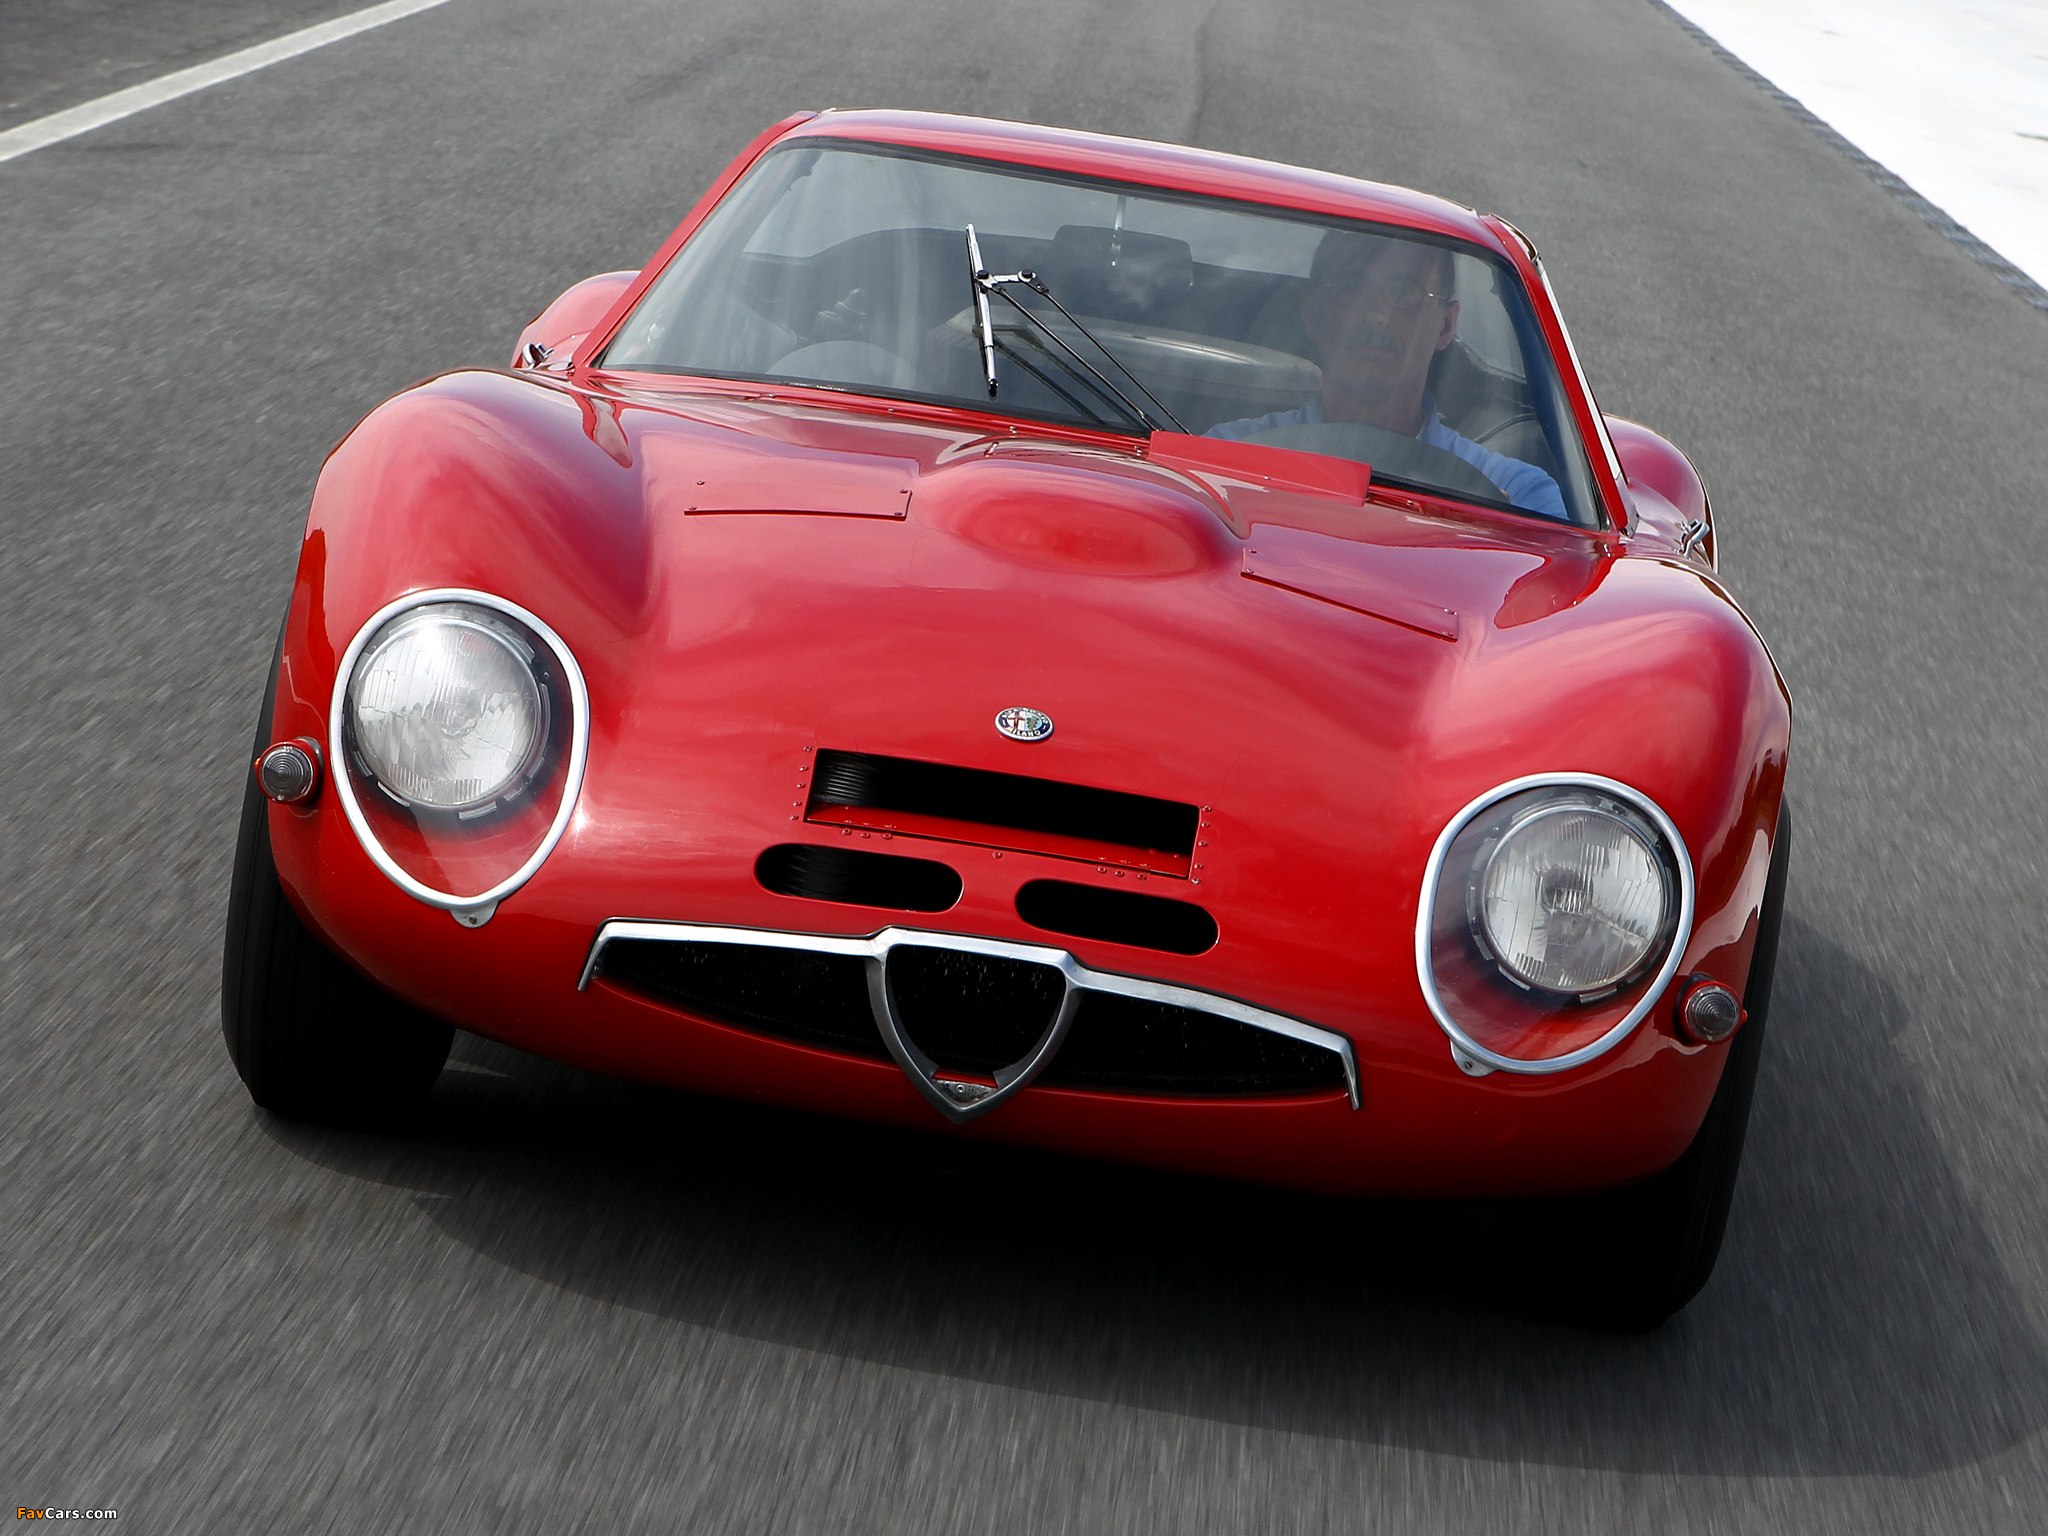 1965 Alfa Romeo Giulia TZ2 infomation specifications WeiLi